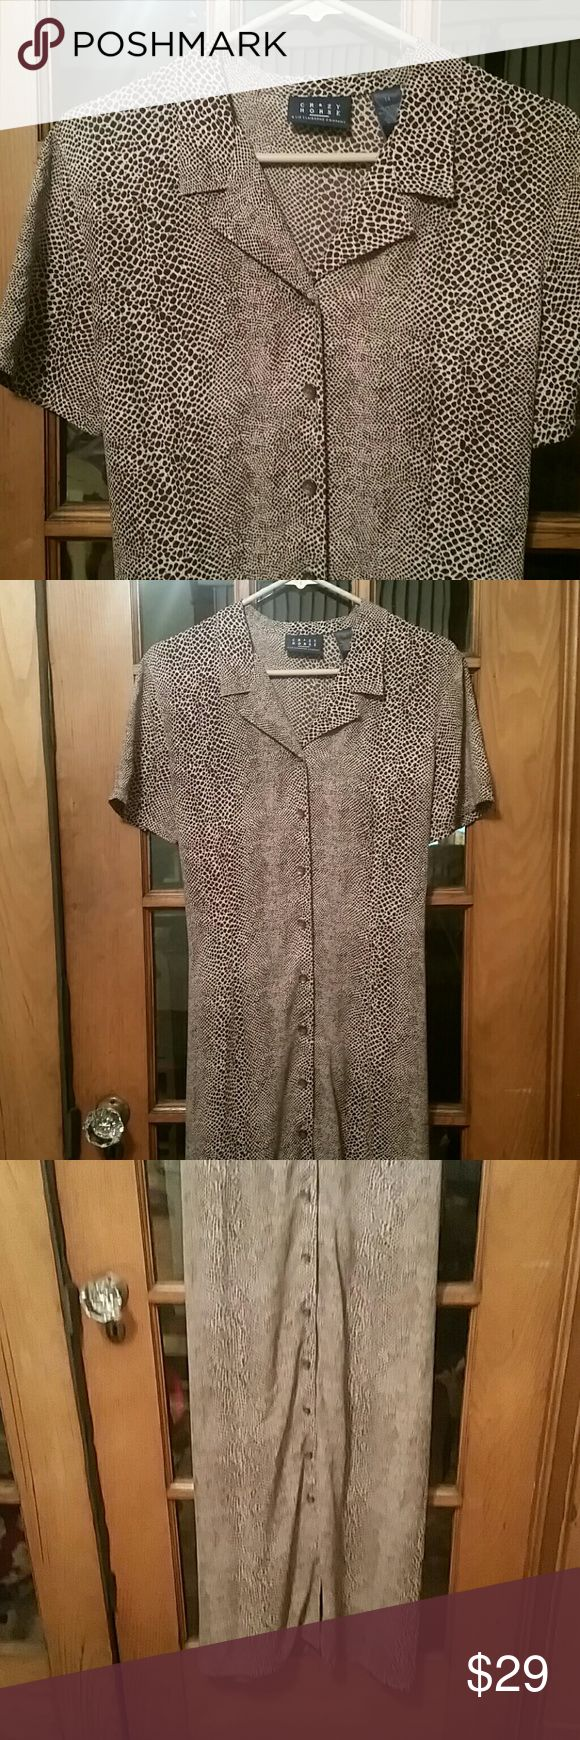 """Crazy Horse Animal Print Dress Very pretty button down, collared short sleeve animal print  maxi dress. This is a long dress that buttons all the way down the front  and ties around the waist in the back. Size 14, EUC,  no flaws.  Length approx 53 3/4"""", armpit to armpit approx 20"""". Color,  brown and beige. Smoke Free Home Dresses Maxi"""